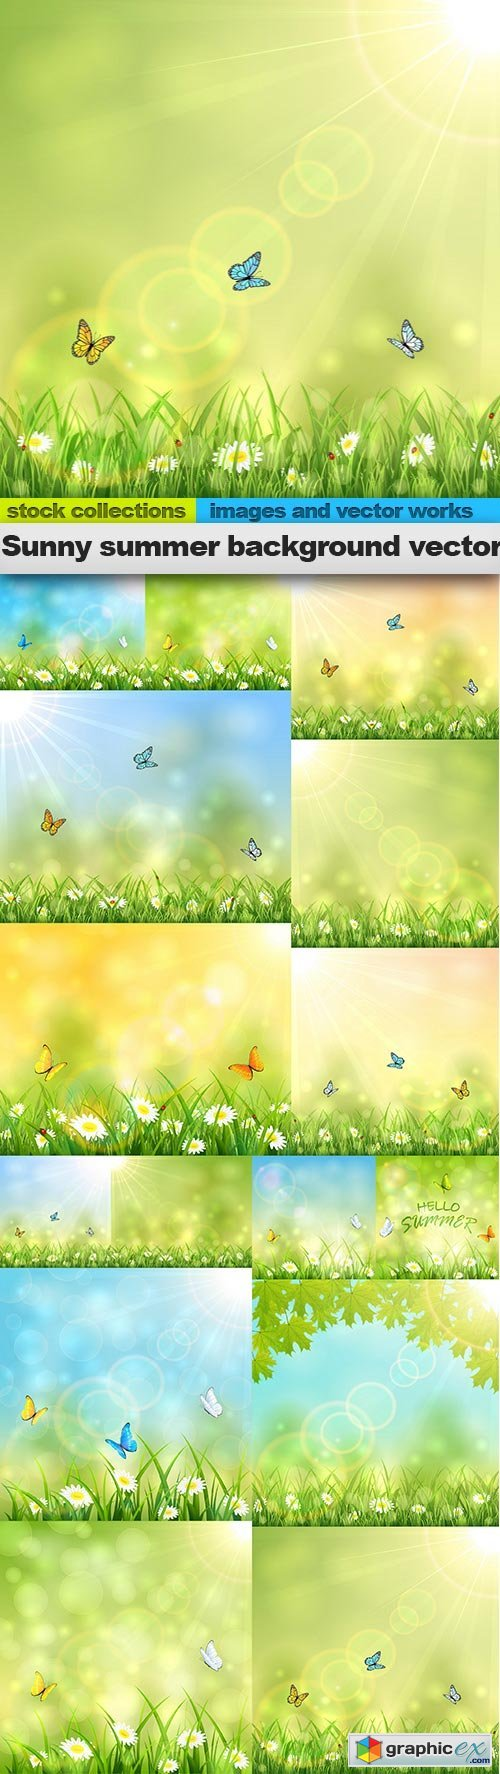 Sunny summer background vector, 15 x EPS